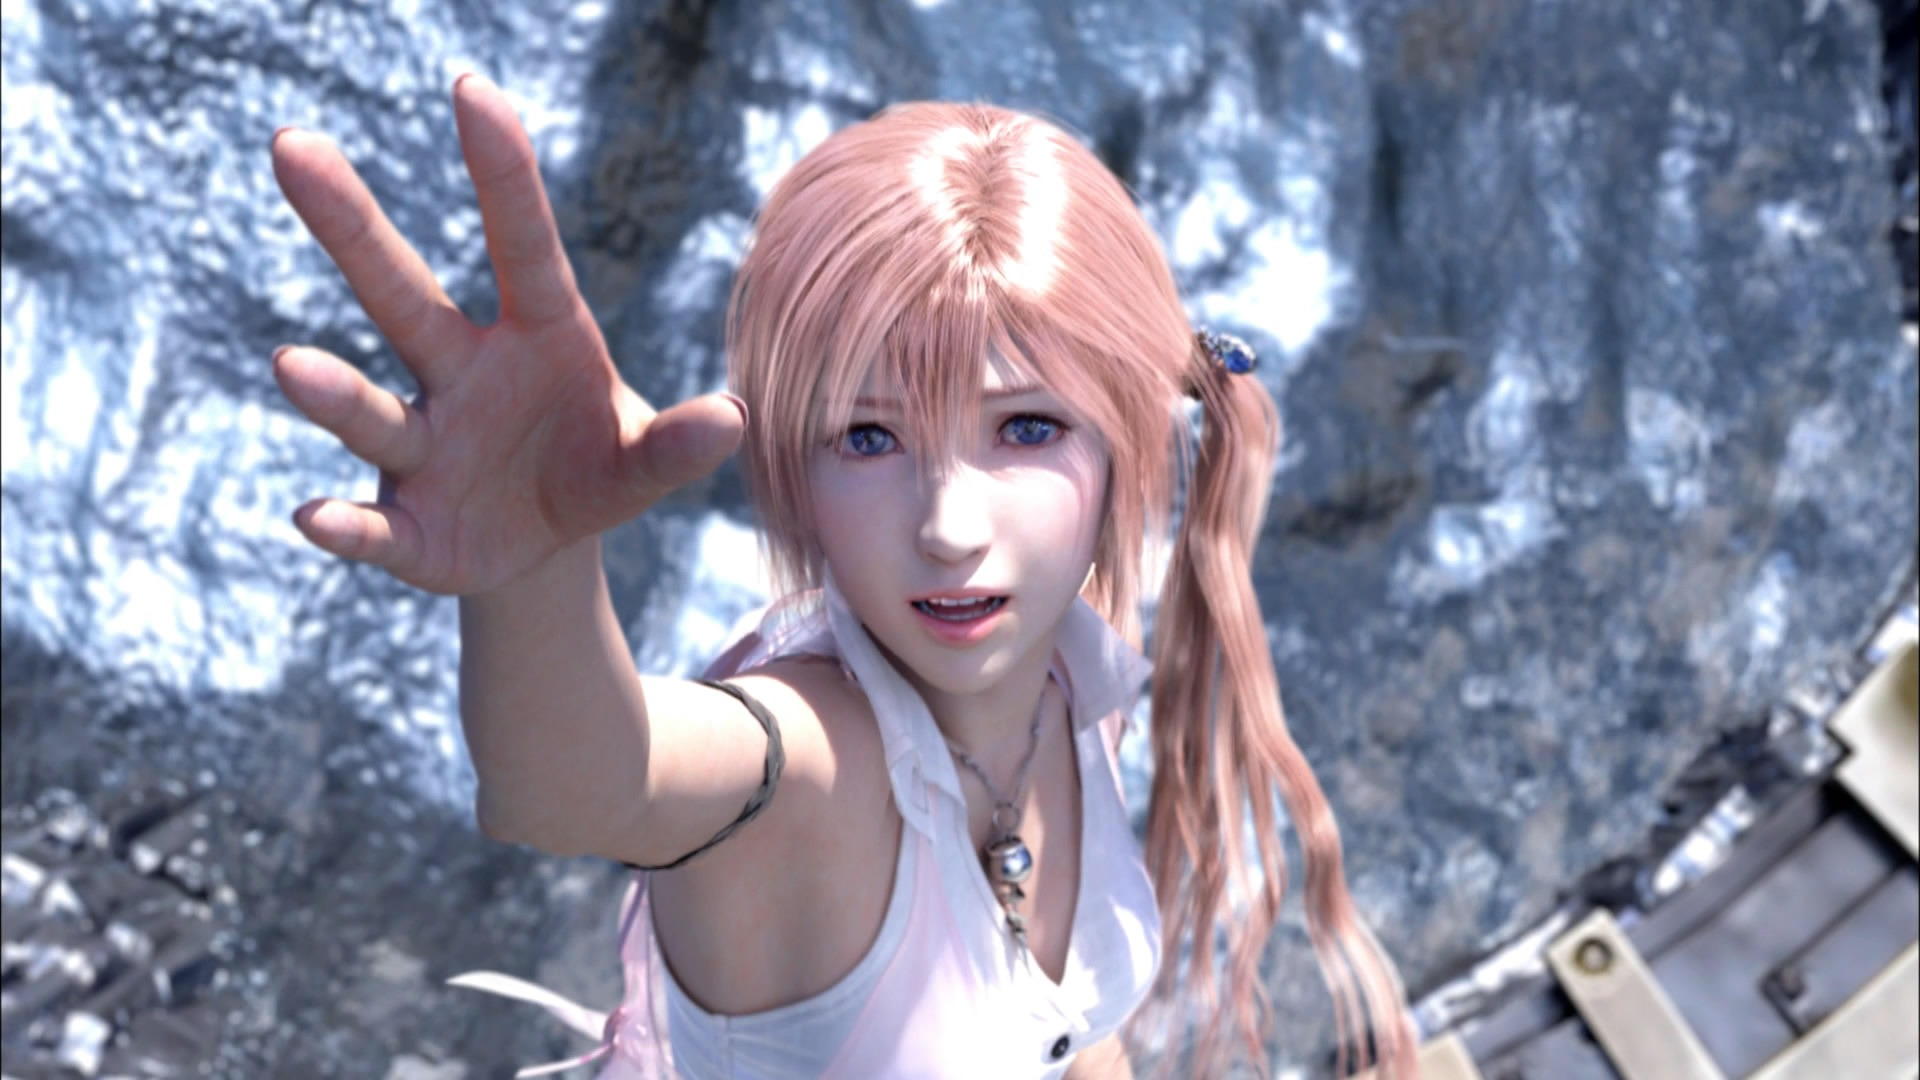 final fantasy 13 hd wallpaper (3) #42 - 1920x1080 wallpaper download